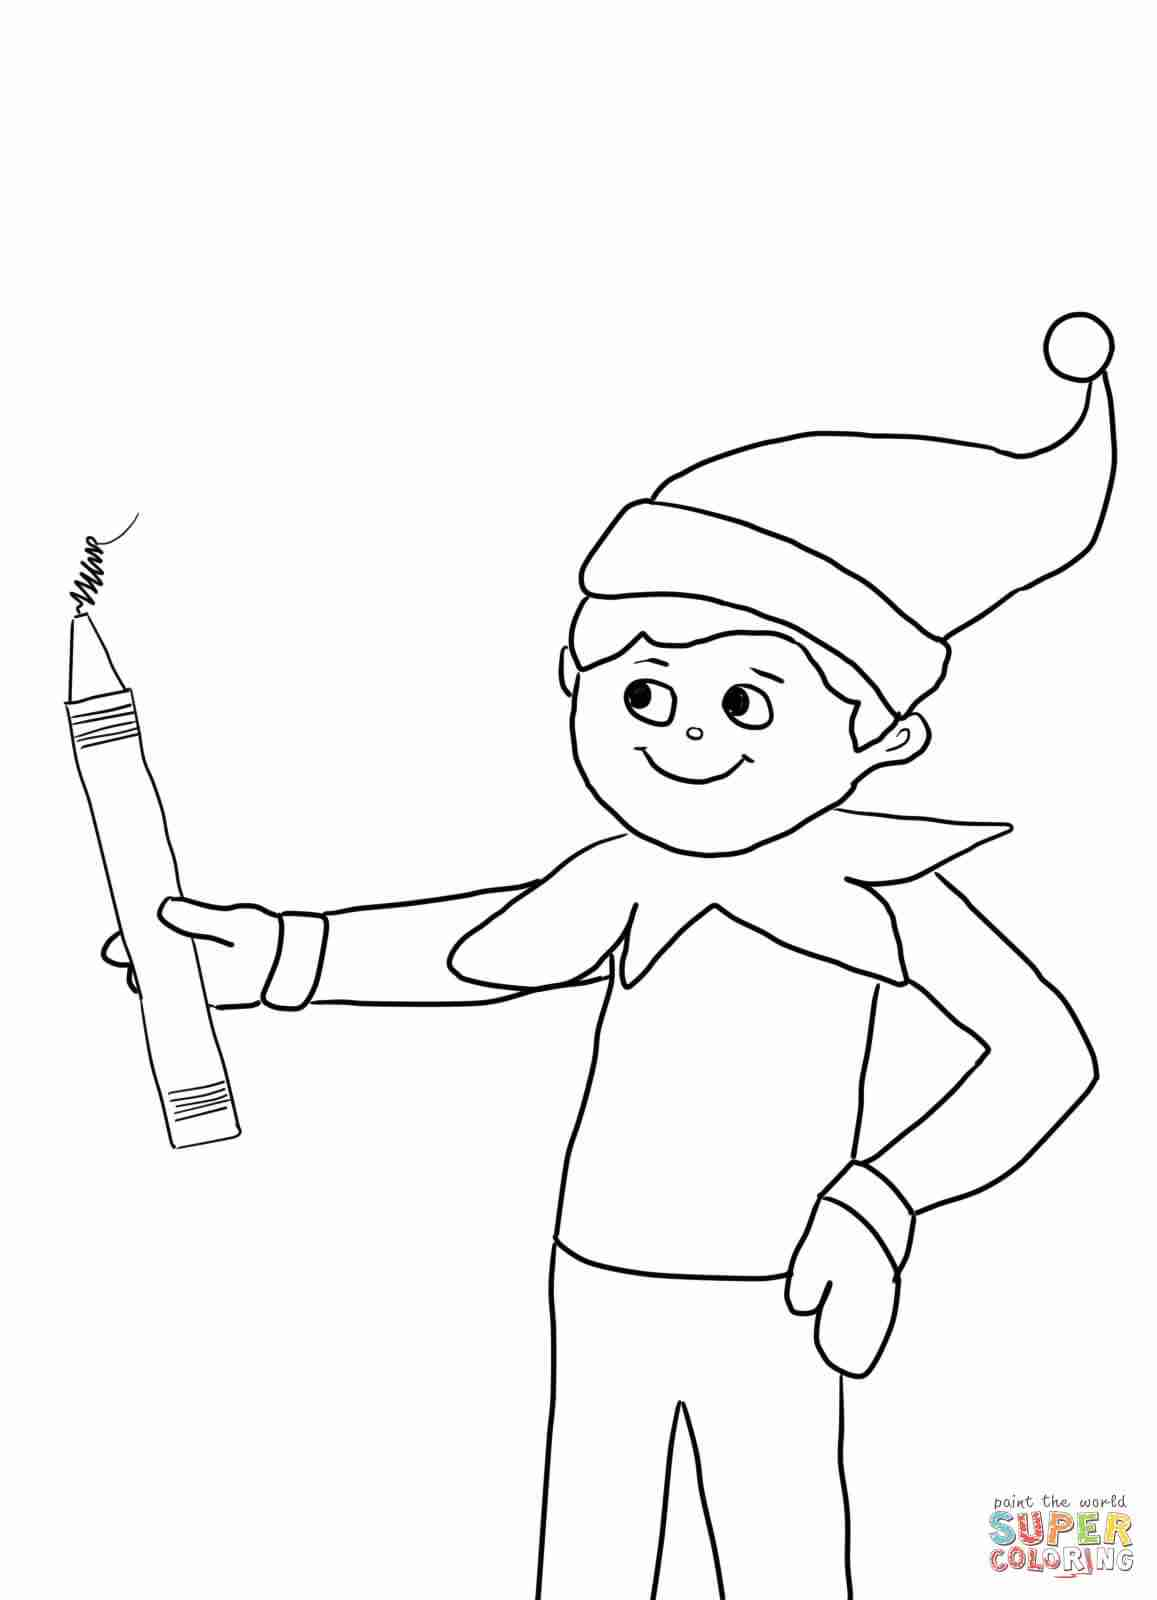 Pencil Coloring Pages Printable At Getcolorings